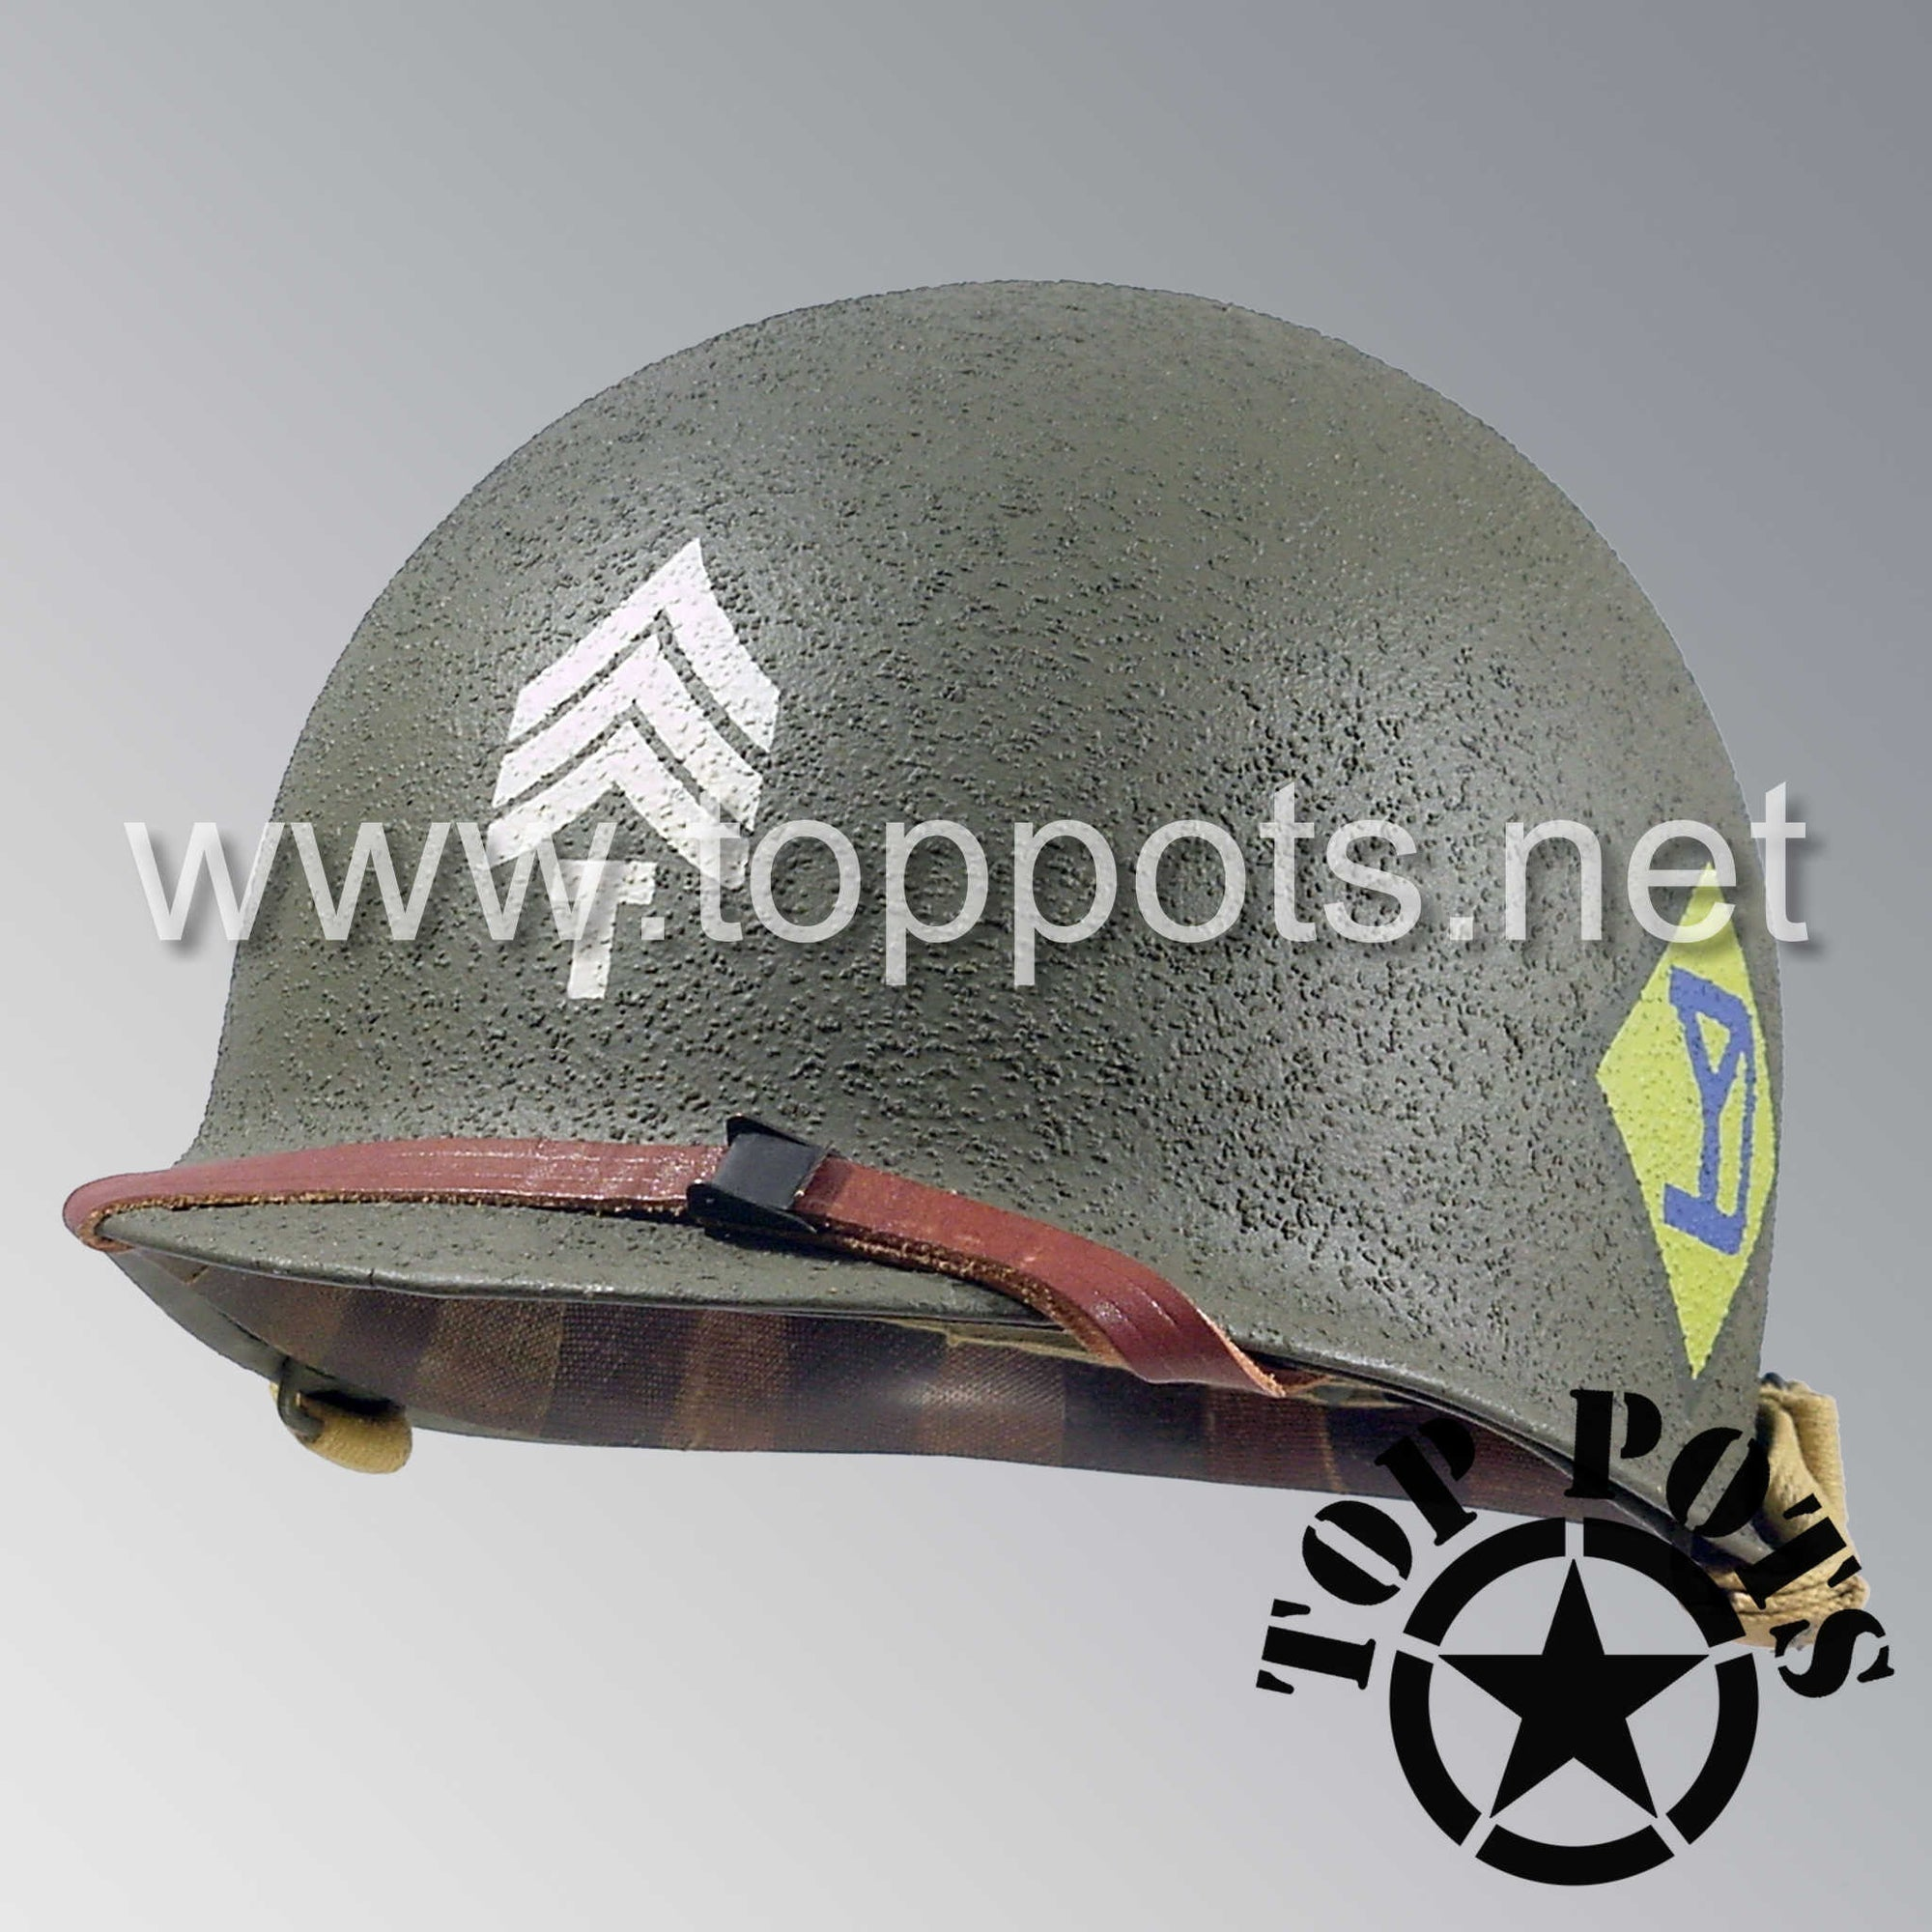 Image 1 of WWII US Army Restored Original M1 Infantry Helmet Swivel Bale Shell and Liner with 26th Infantry Division NCO Emblem